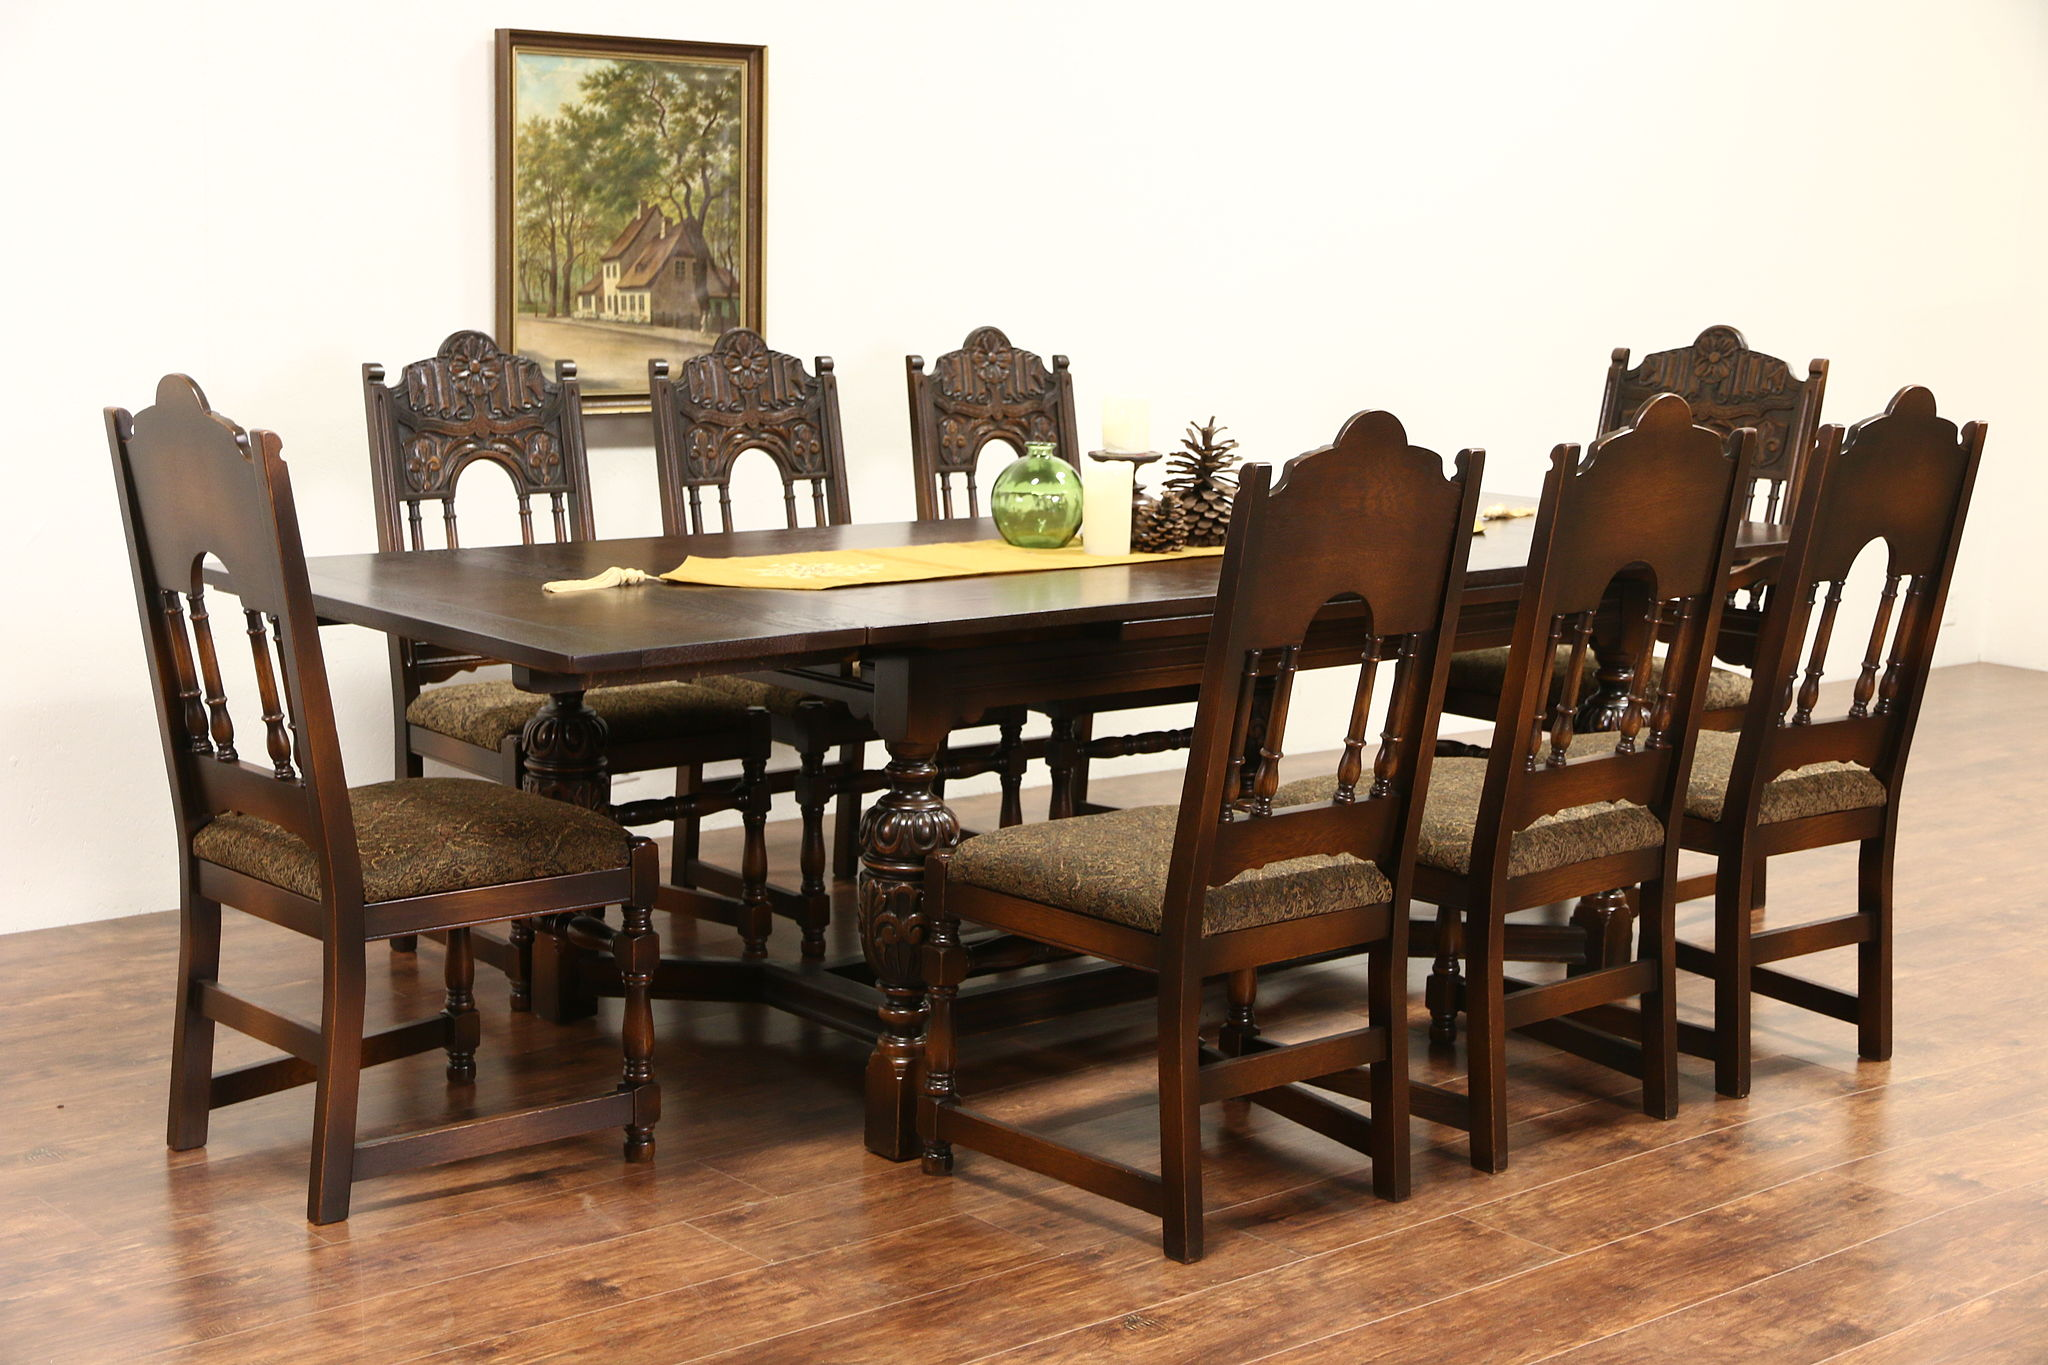 Sold English Tudor Carved Oak 1925 Antique Dining Set Table 8 Chairs Harp Gallery Antiques Furniture